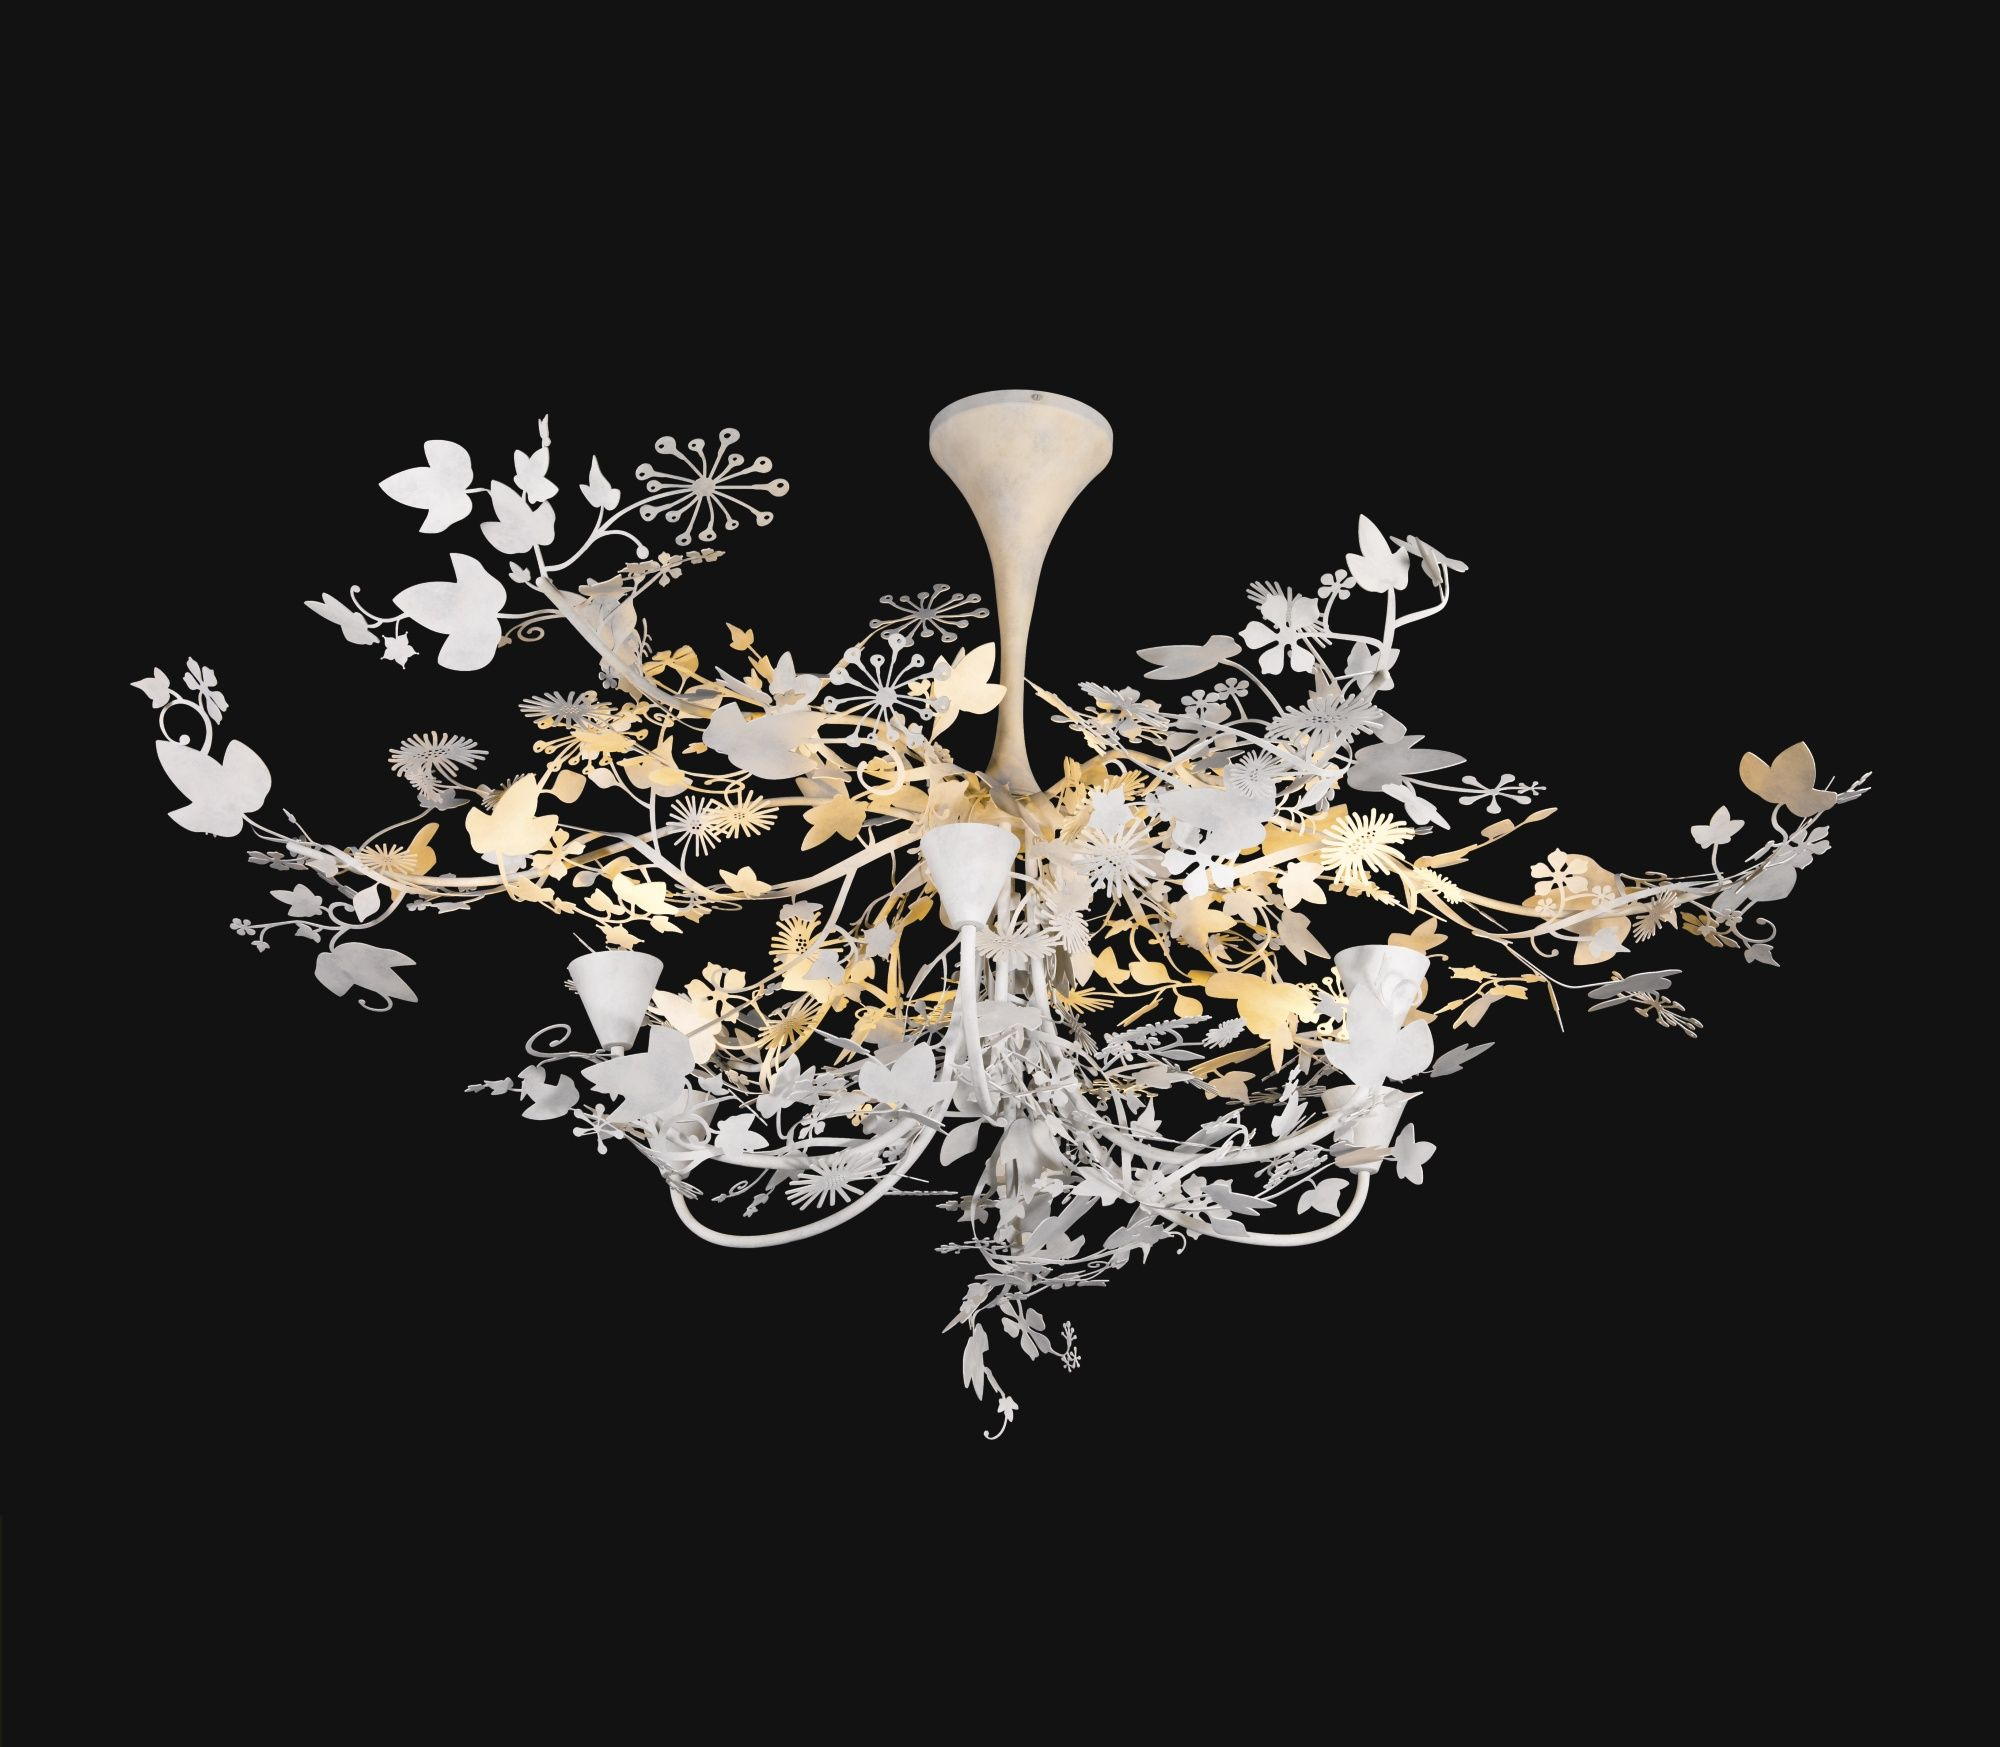 Tord Boontje 'IVY SHADOW' CHANDELIER, 2014